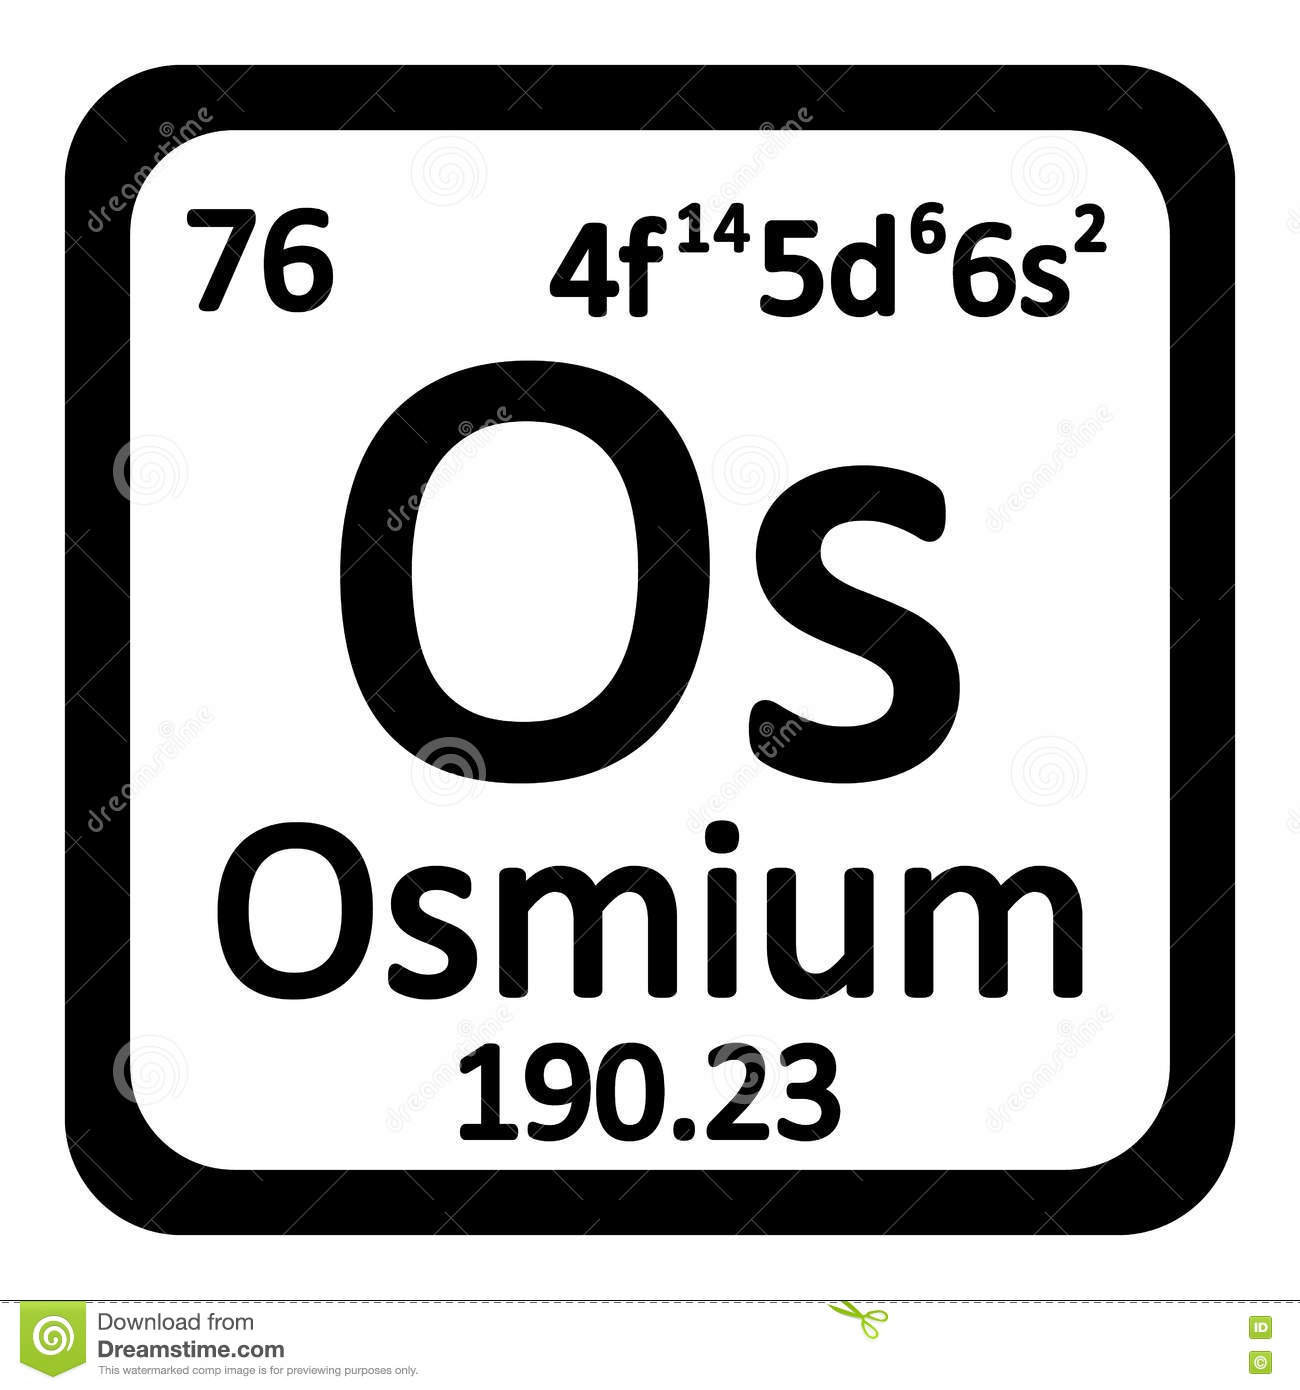 Periodic table element osmium icon stock illustration periodic table element osmium icon biocorpaavc Image collections